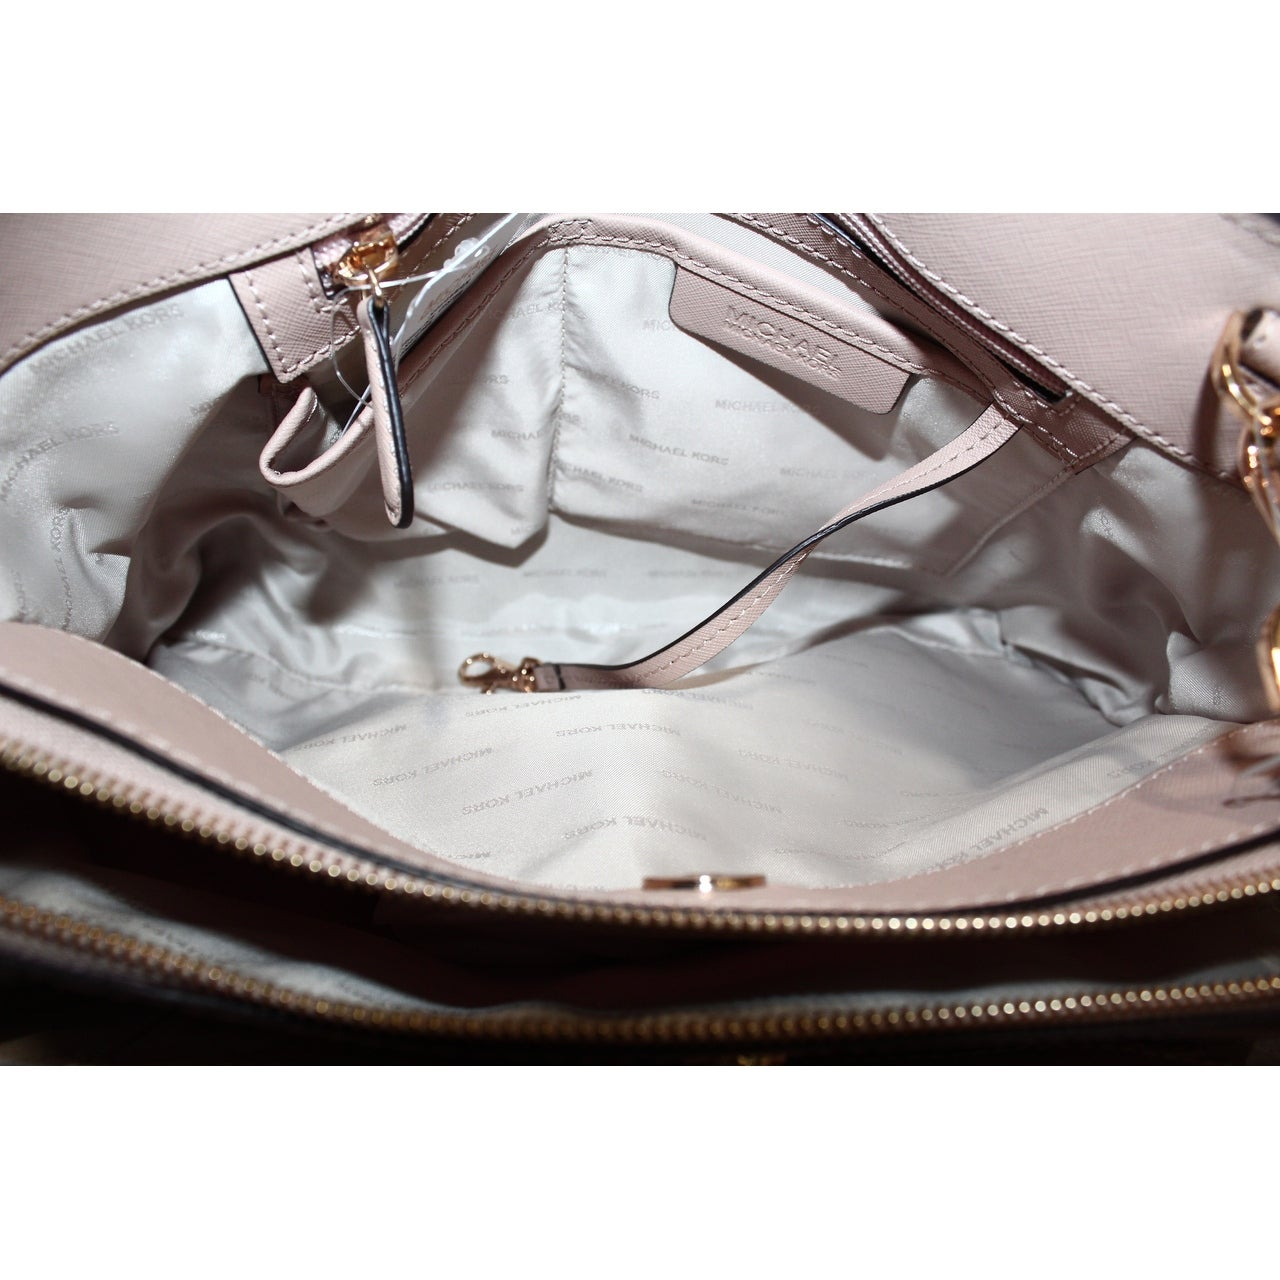 8a940f02eb559e Shop Michael Kors NEW Beige Oyster Saffiano Savannah Large Satchel Bag Purse  - Free Shipping Today - Overstock - 19999612